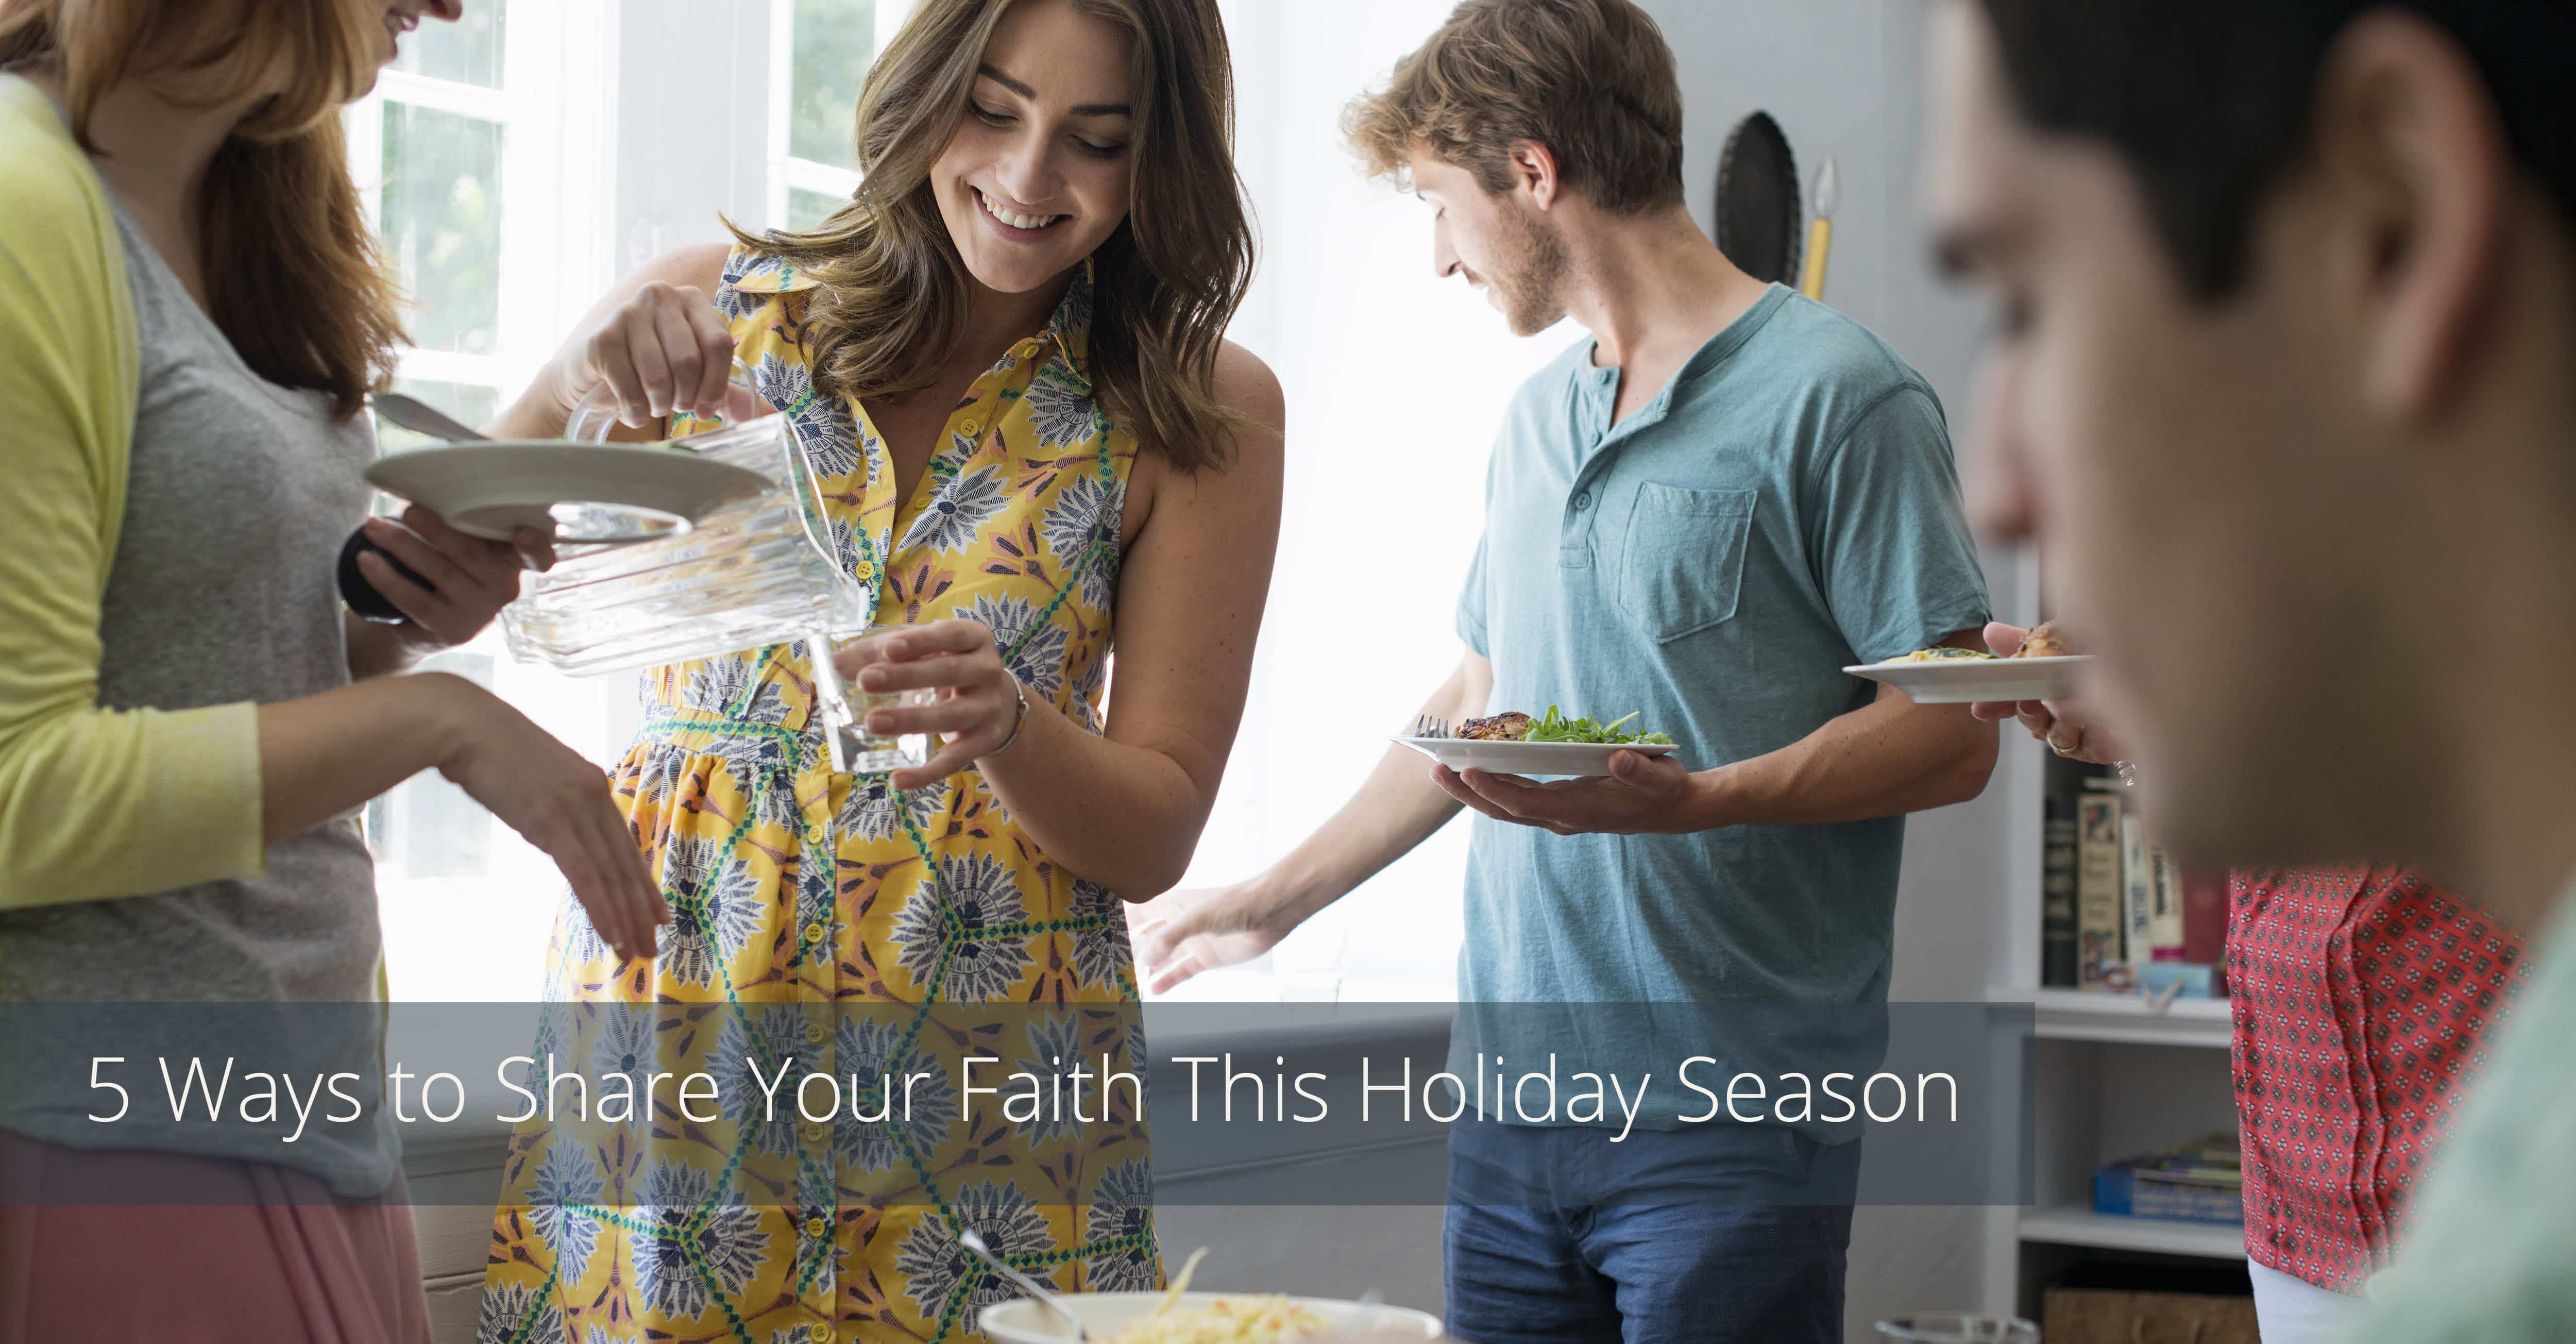 5 Ways to Share Your Faith this Holiday Season